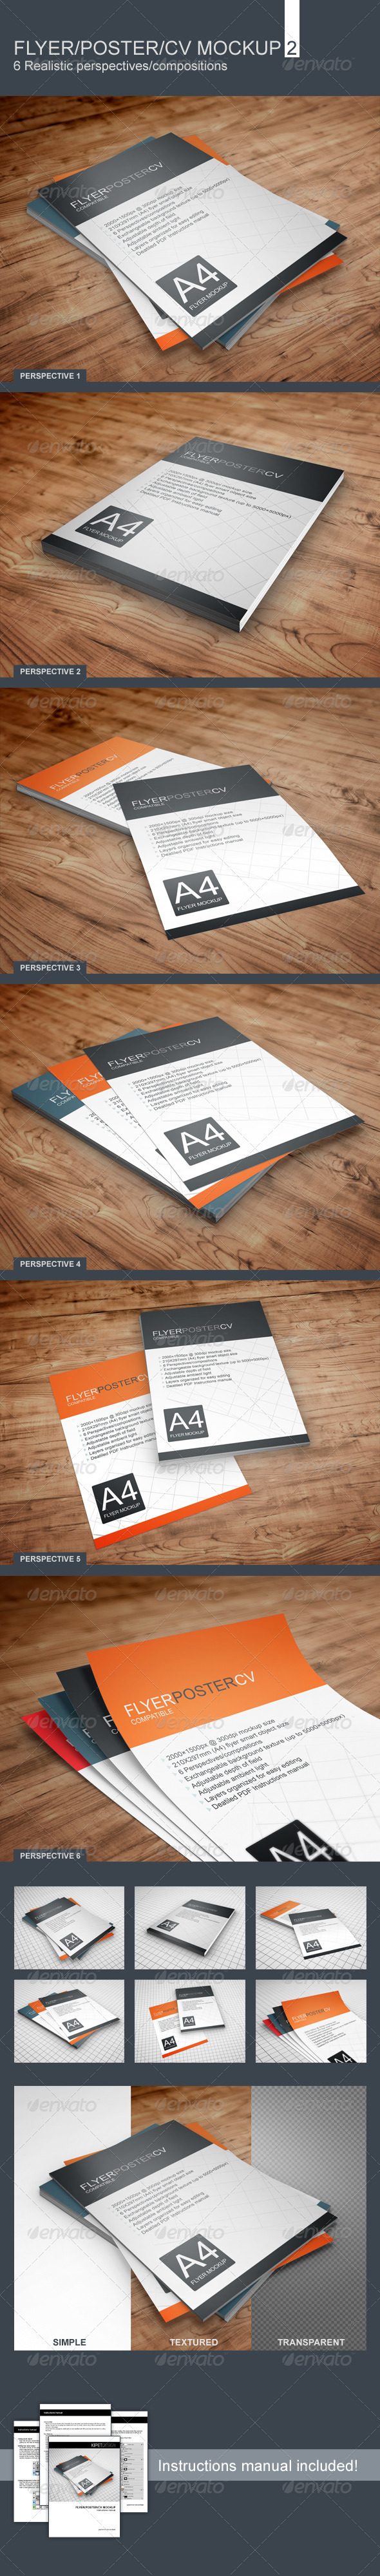 GraphicRiver Realistic Flyer Poster CV Mockup 2 6203442